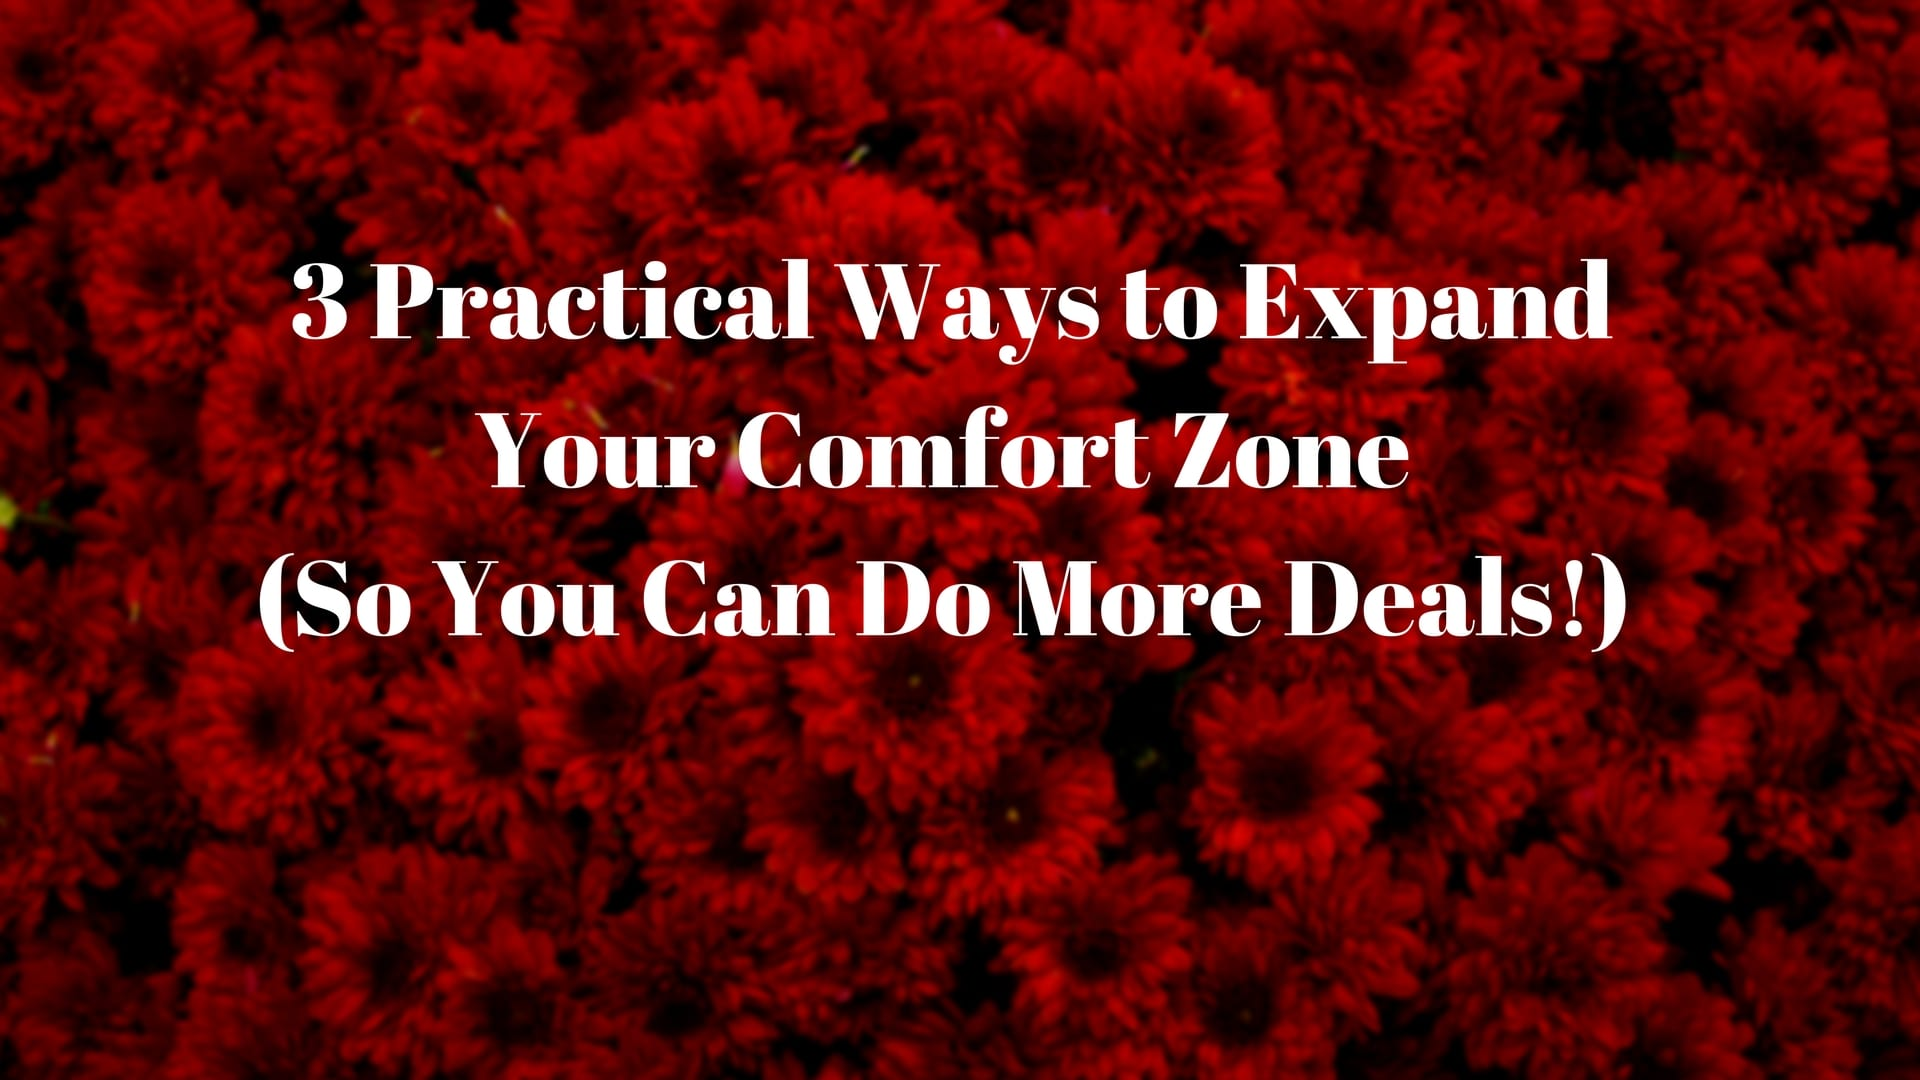 3 Things You Can Do To Expand Your Comfort Zone (So You Can Do Almost Anything!)